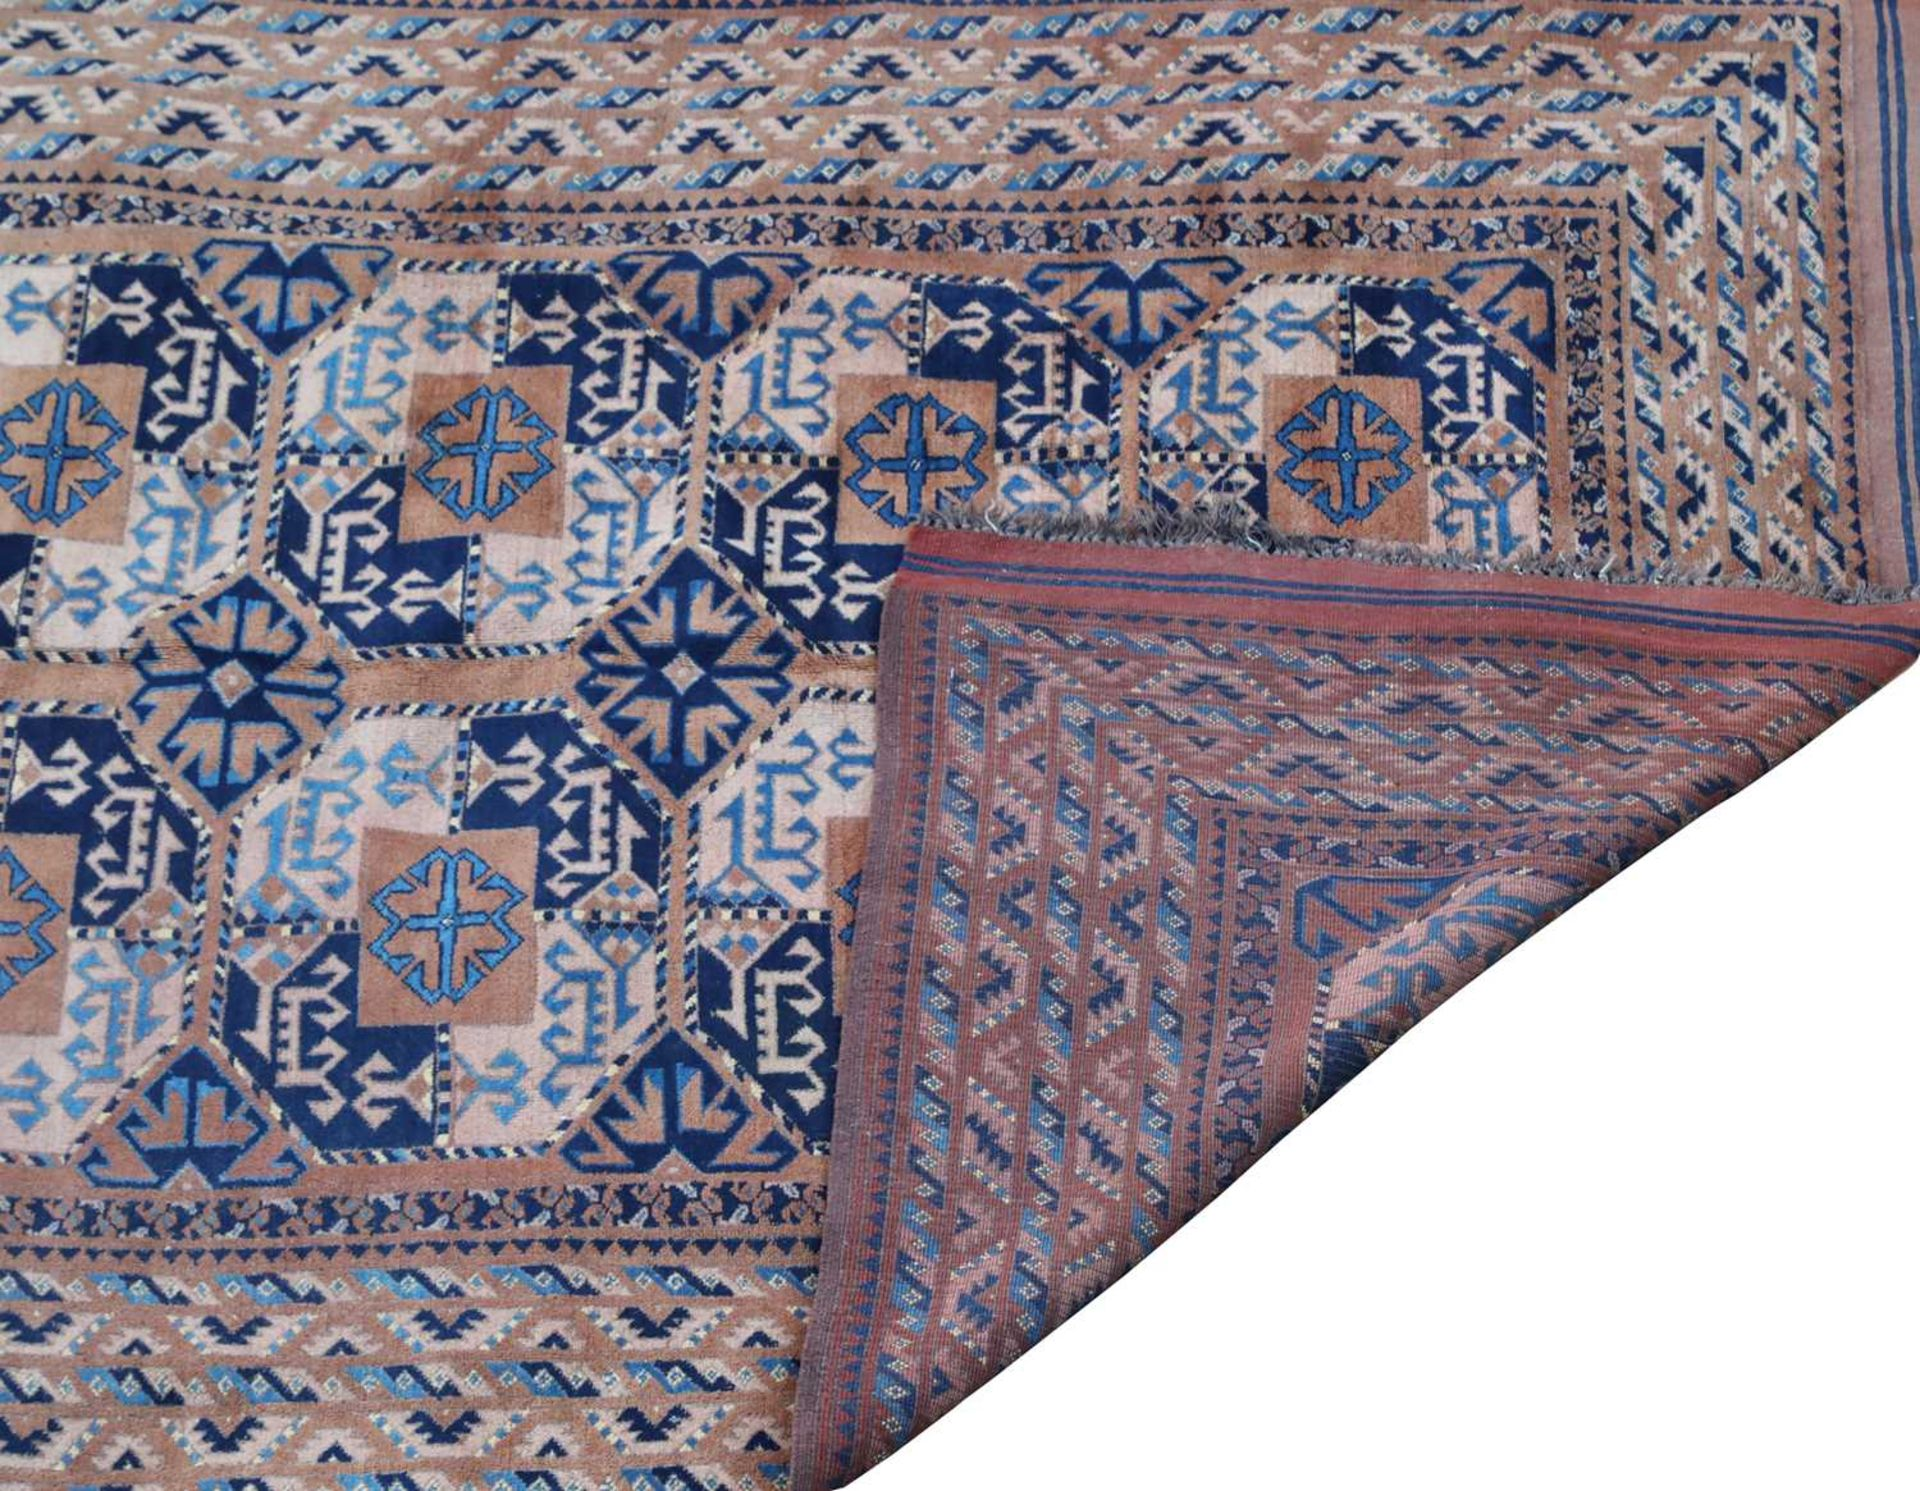 A Central Asian Ersari rug, - Image 2 of 2